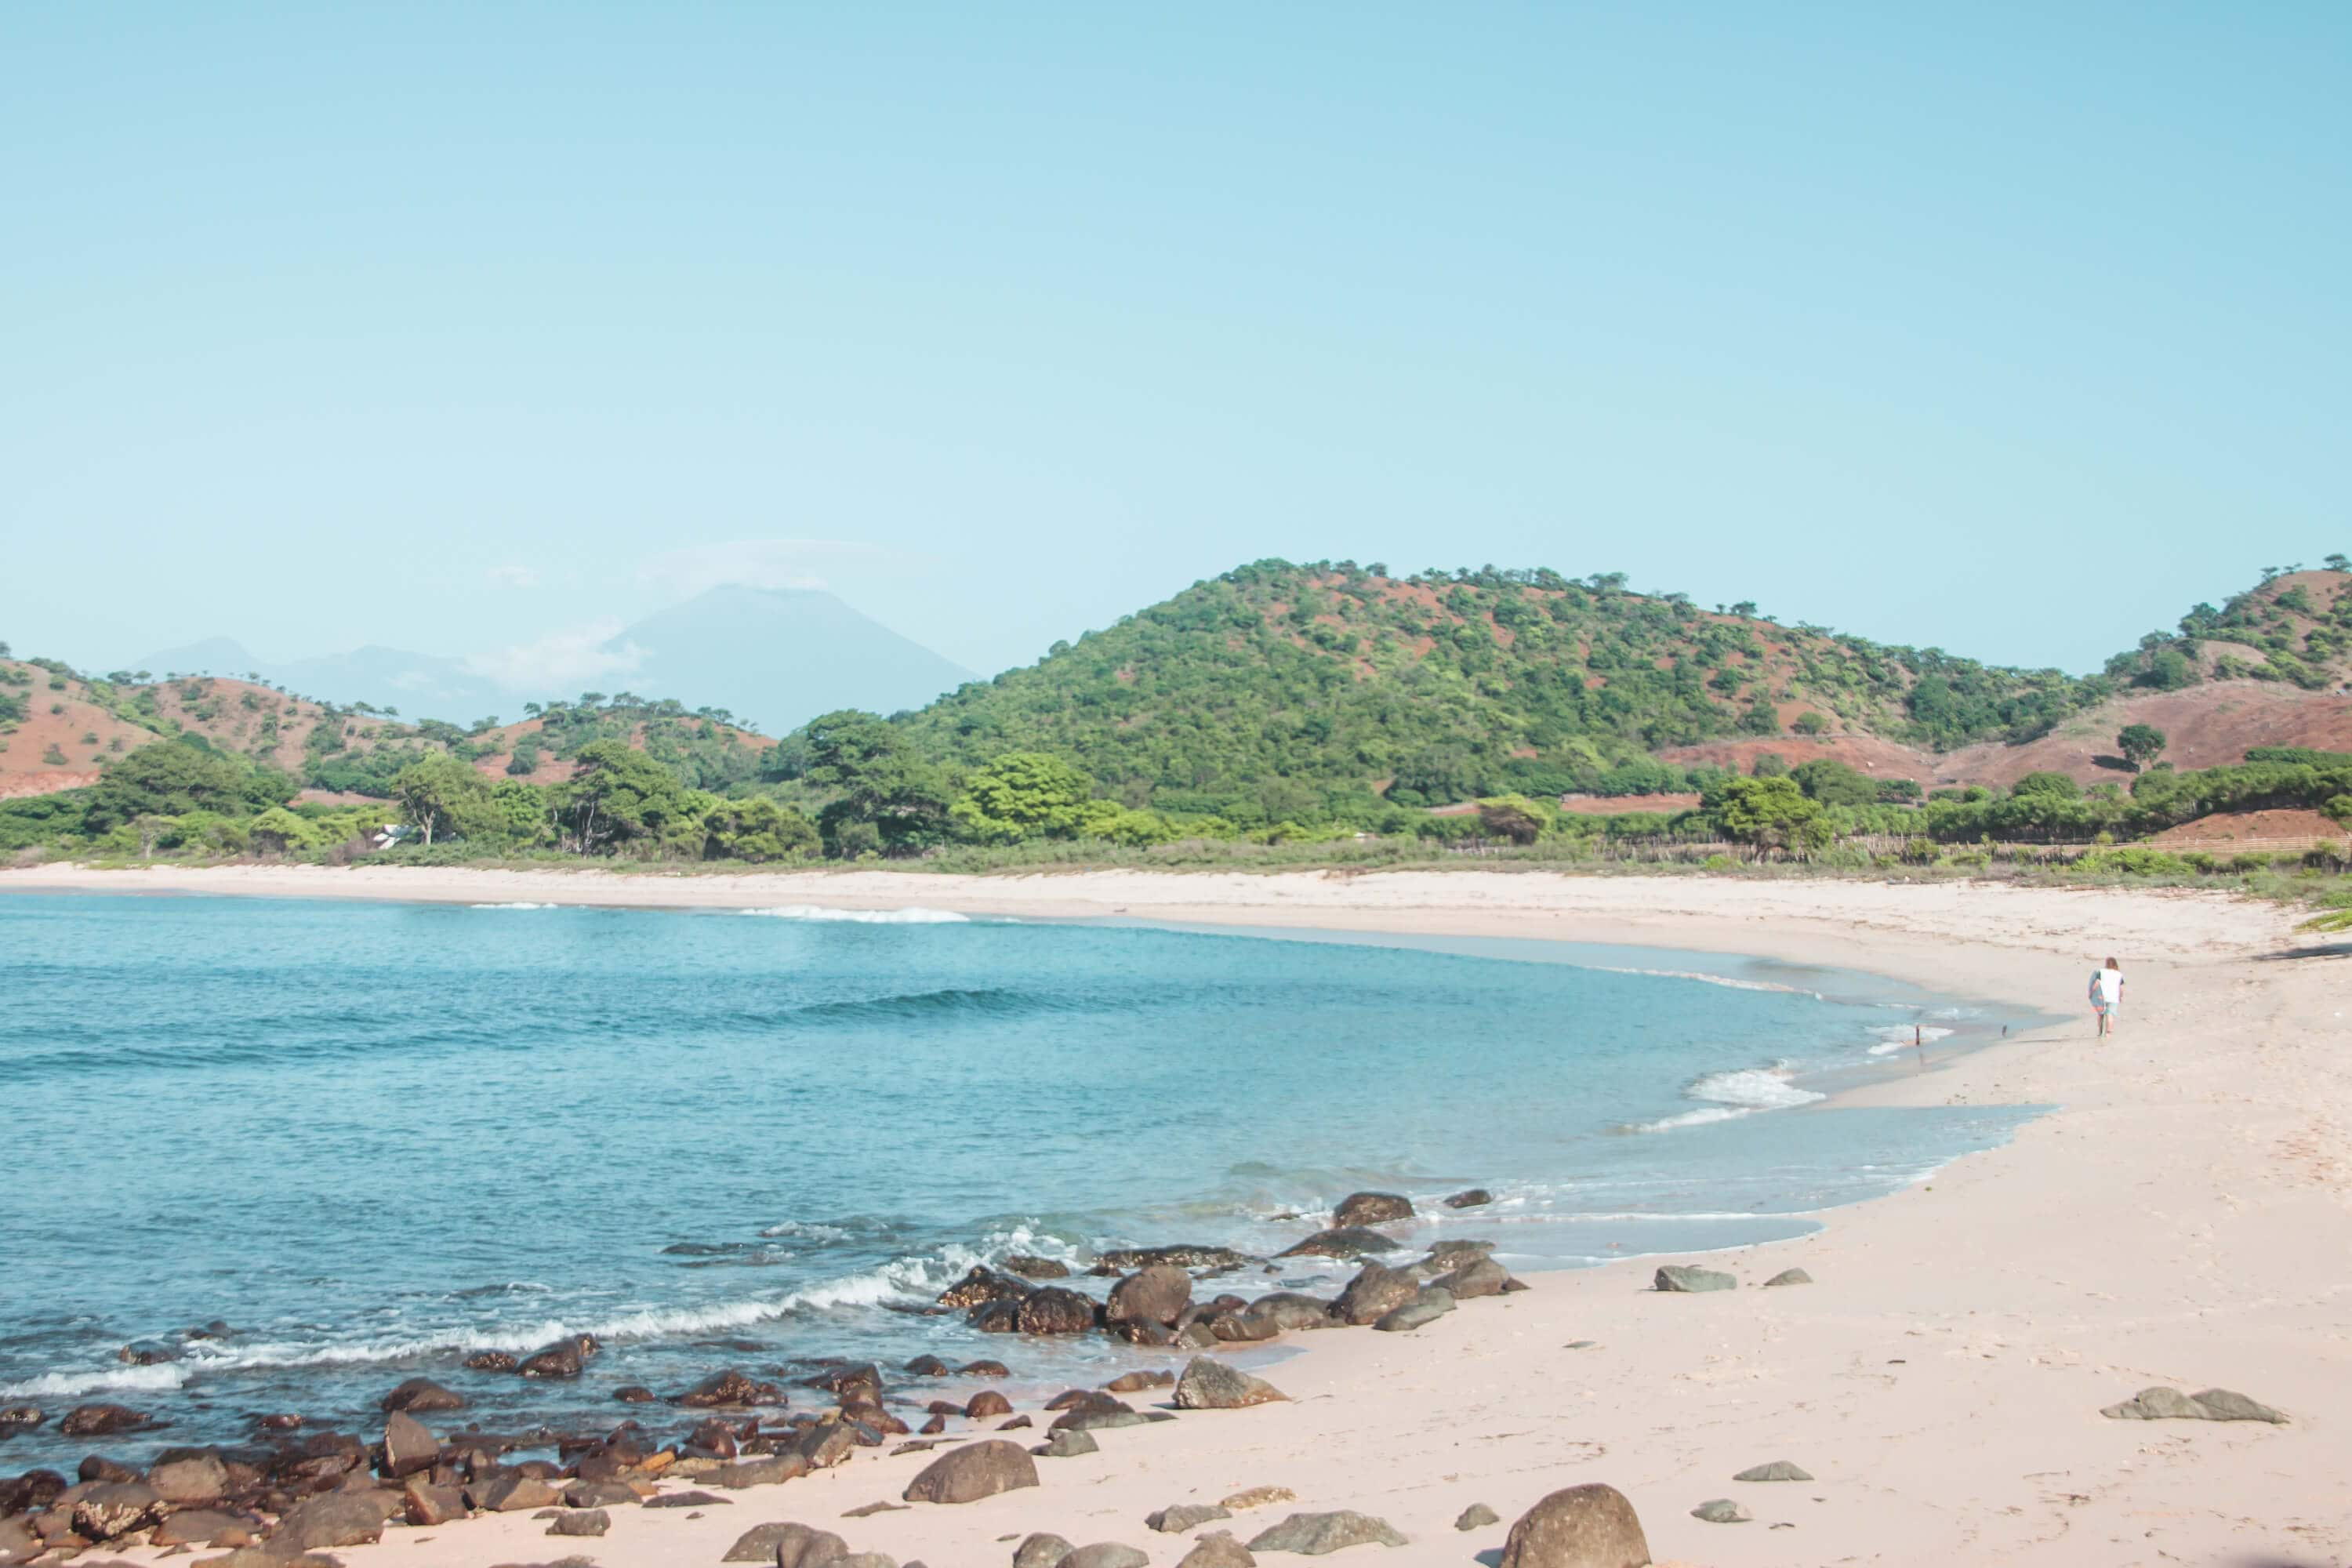 Searching for waves in Kertasari - Whales & Waves Resort in Sumbawa, Indonesia - The most amazing place I've ever been